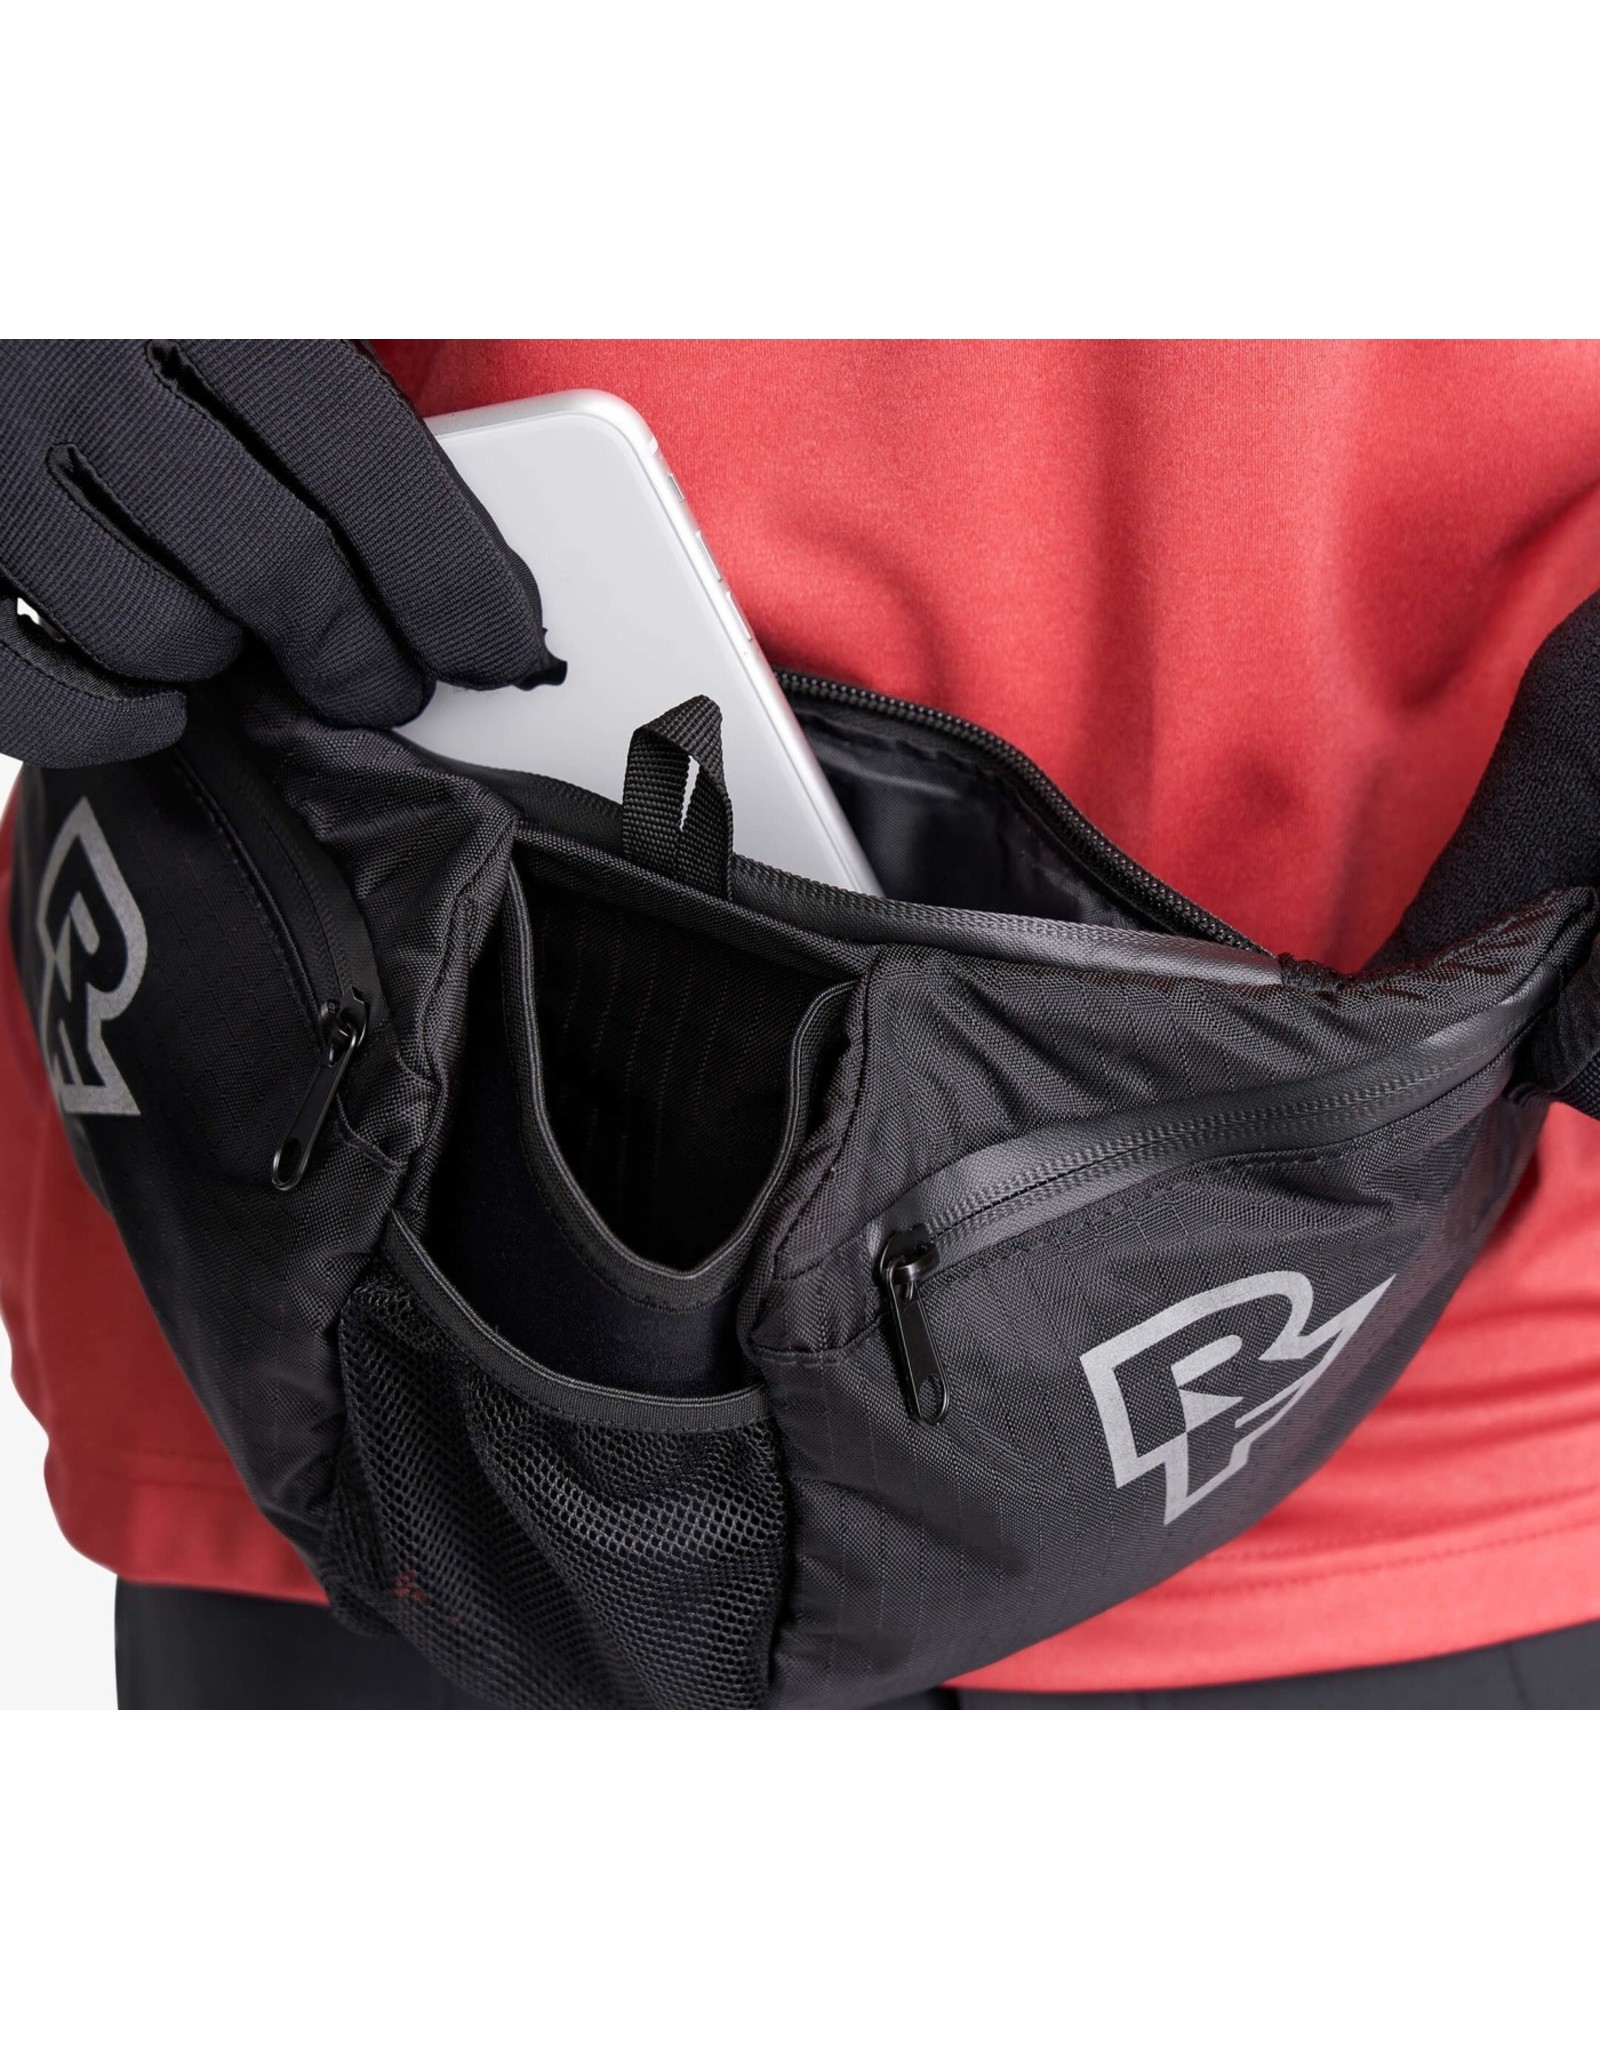 Race Face Raceface Stash Quick Rip Bag-Stealth-Onesize Stealth